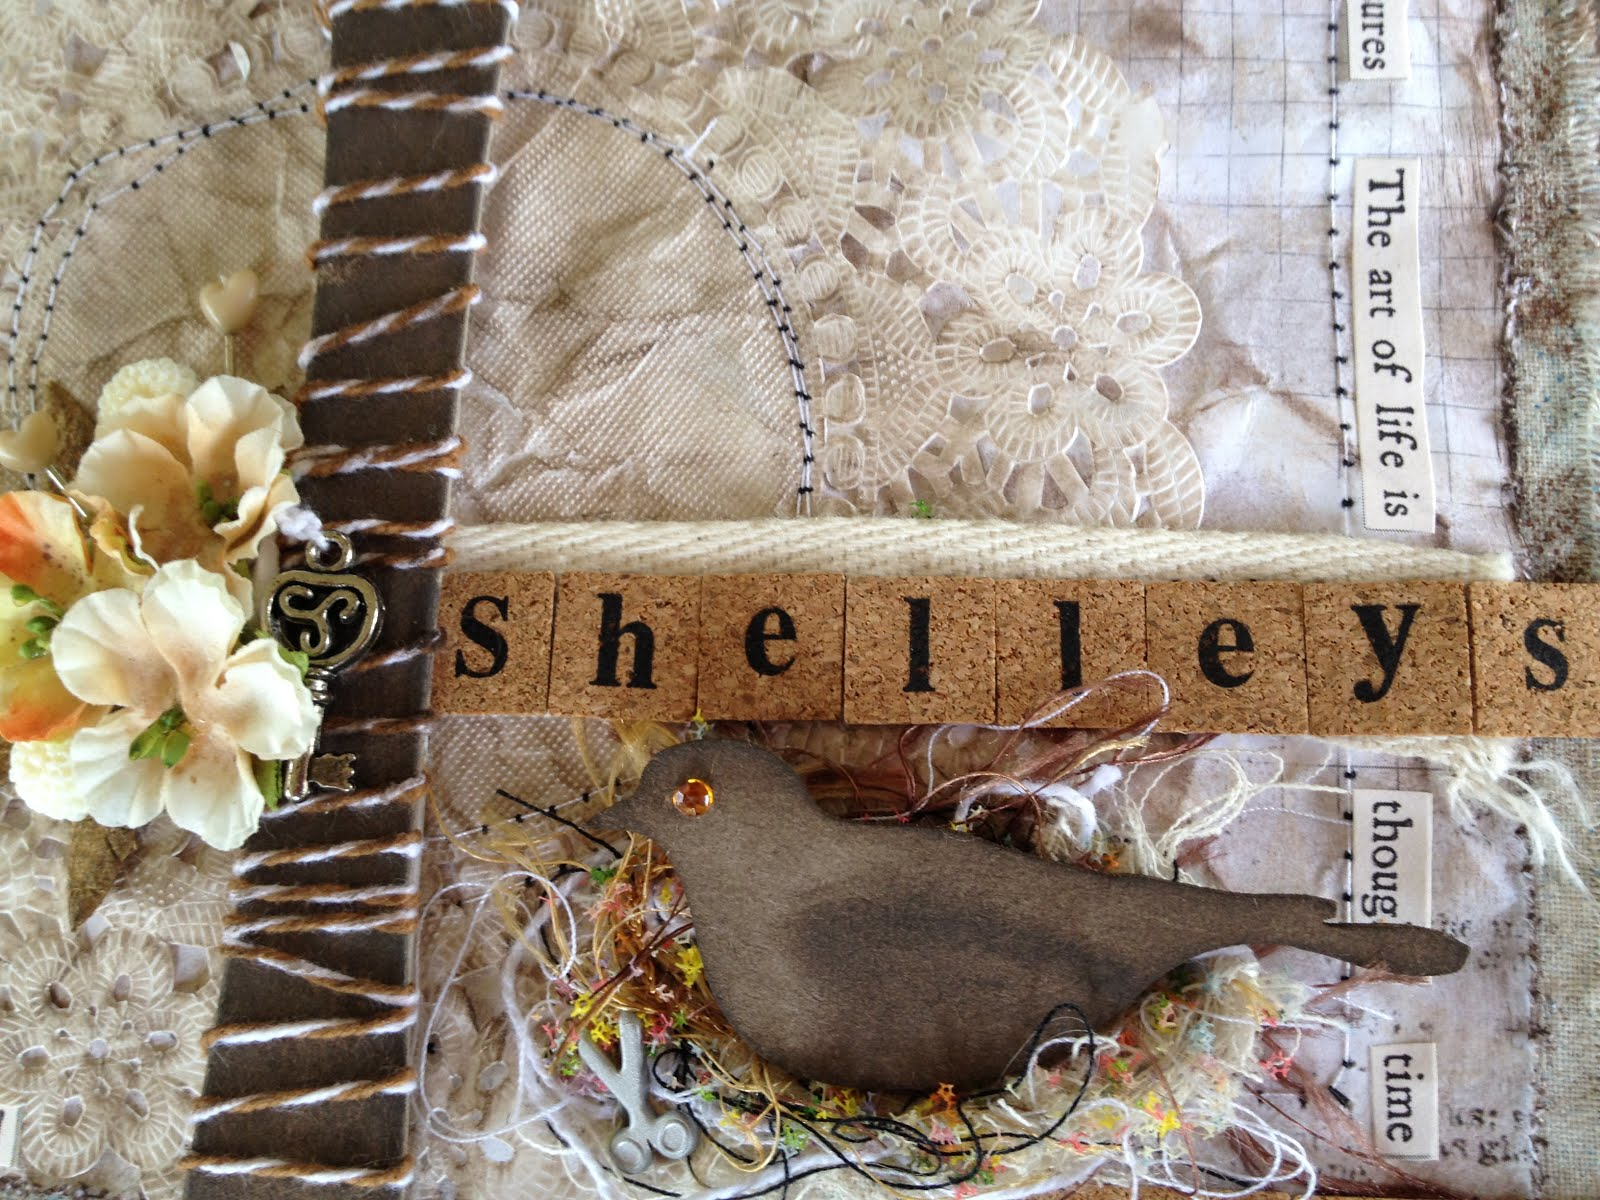 Shelley's Nest